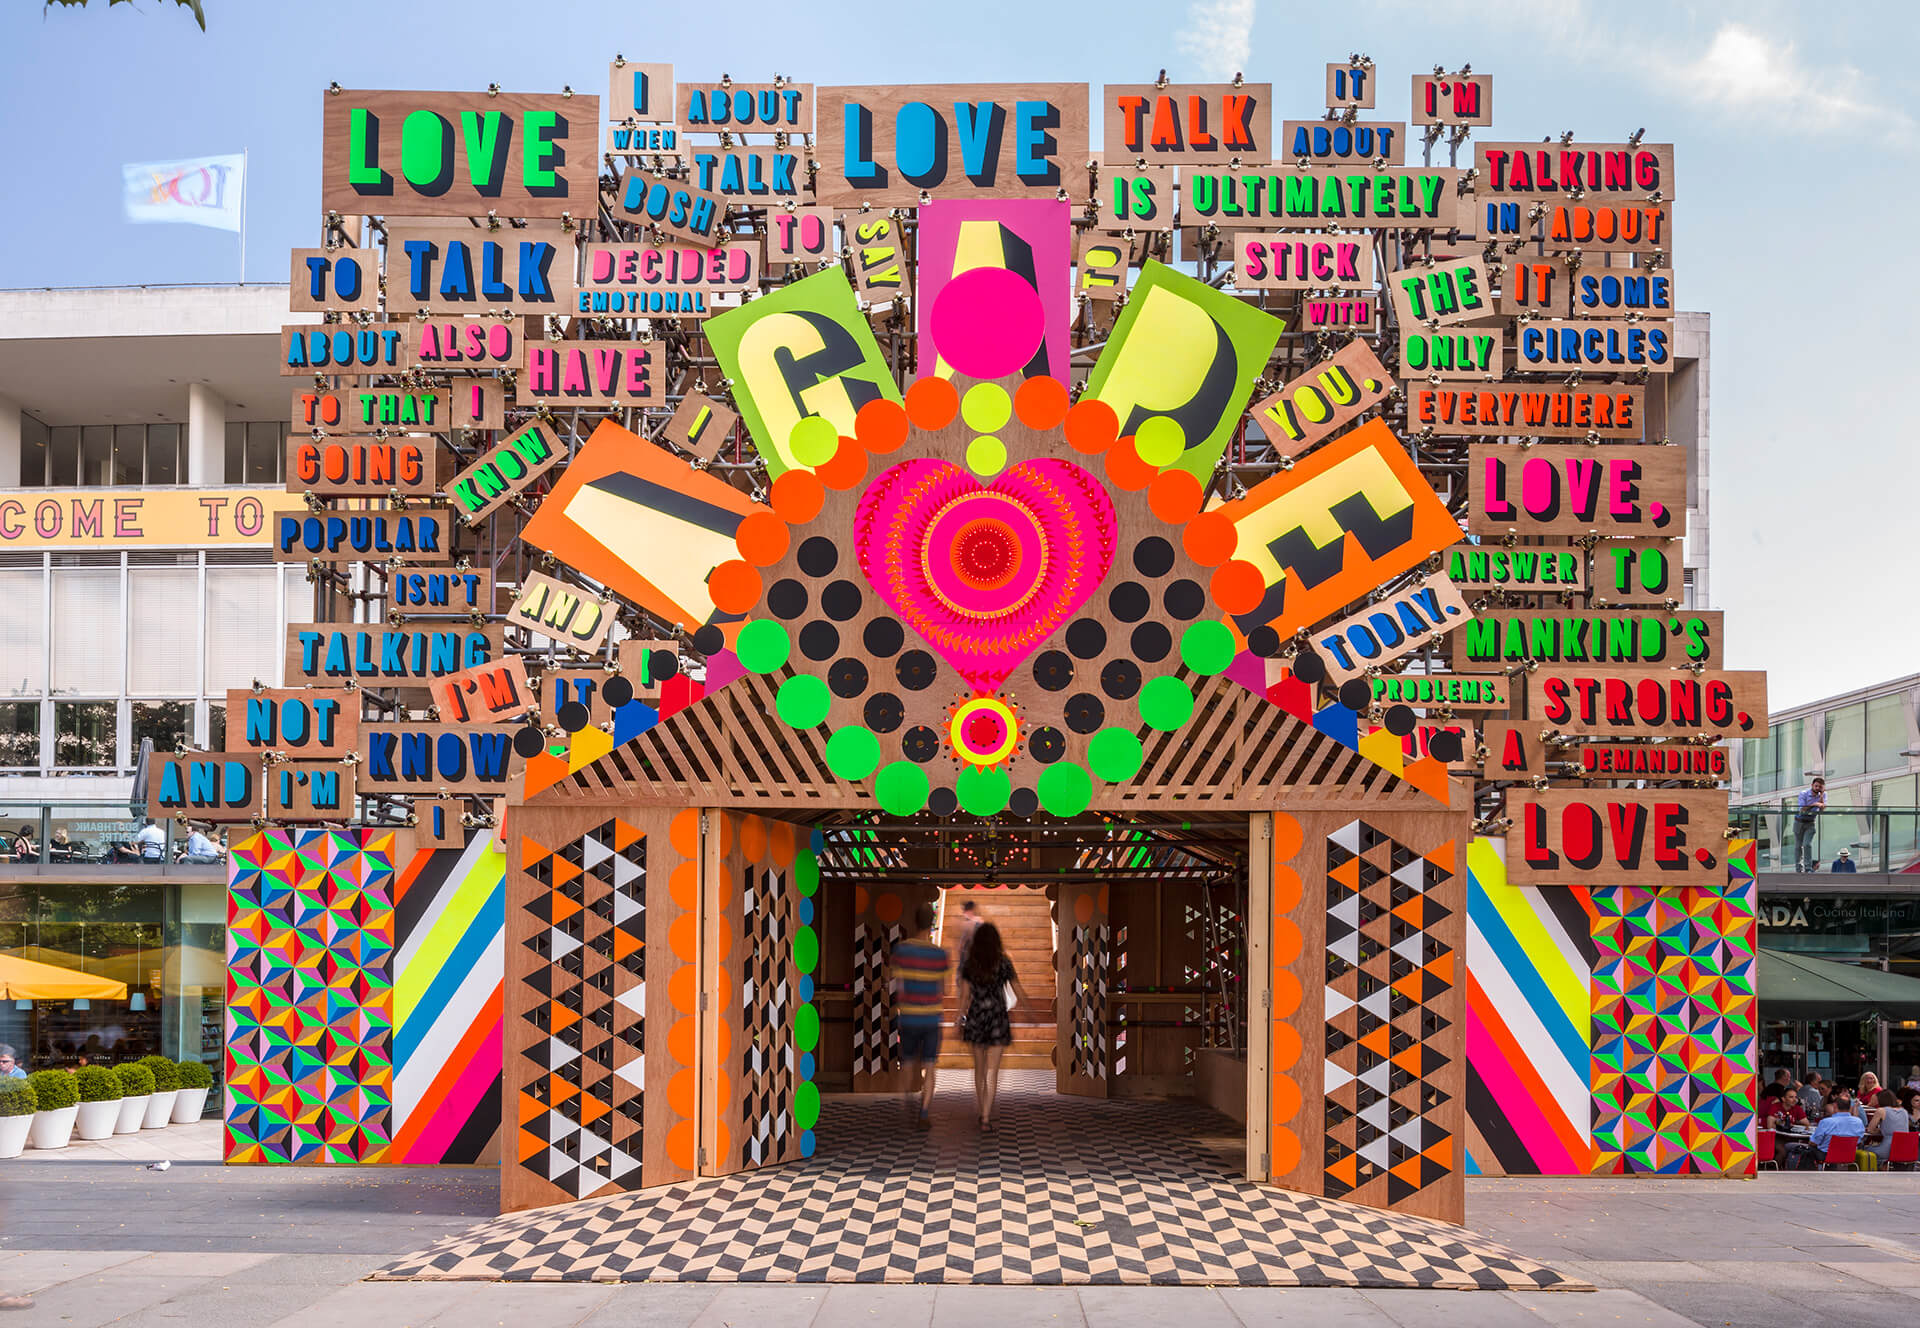 The Temple of Agape designed by Morag Myerscough and Luke Morgan for the Festival of Love in London in 2014 | Morag Myerscough | Women in Design 2020 + | STIRworld